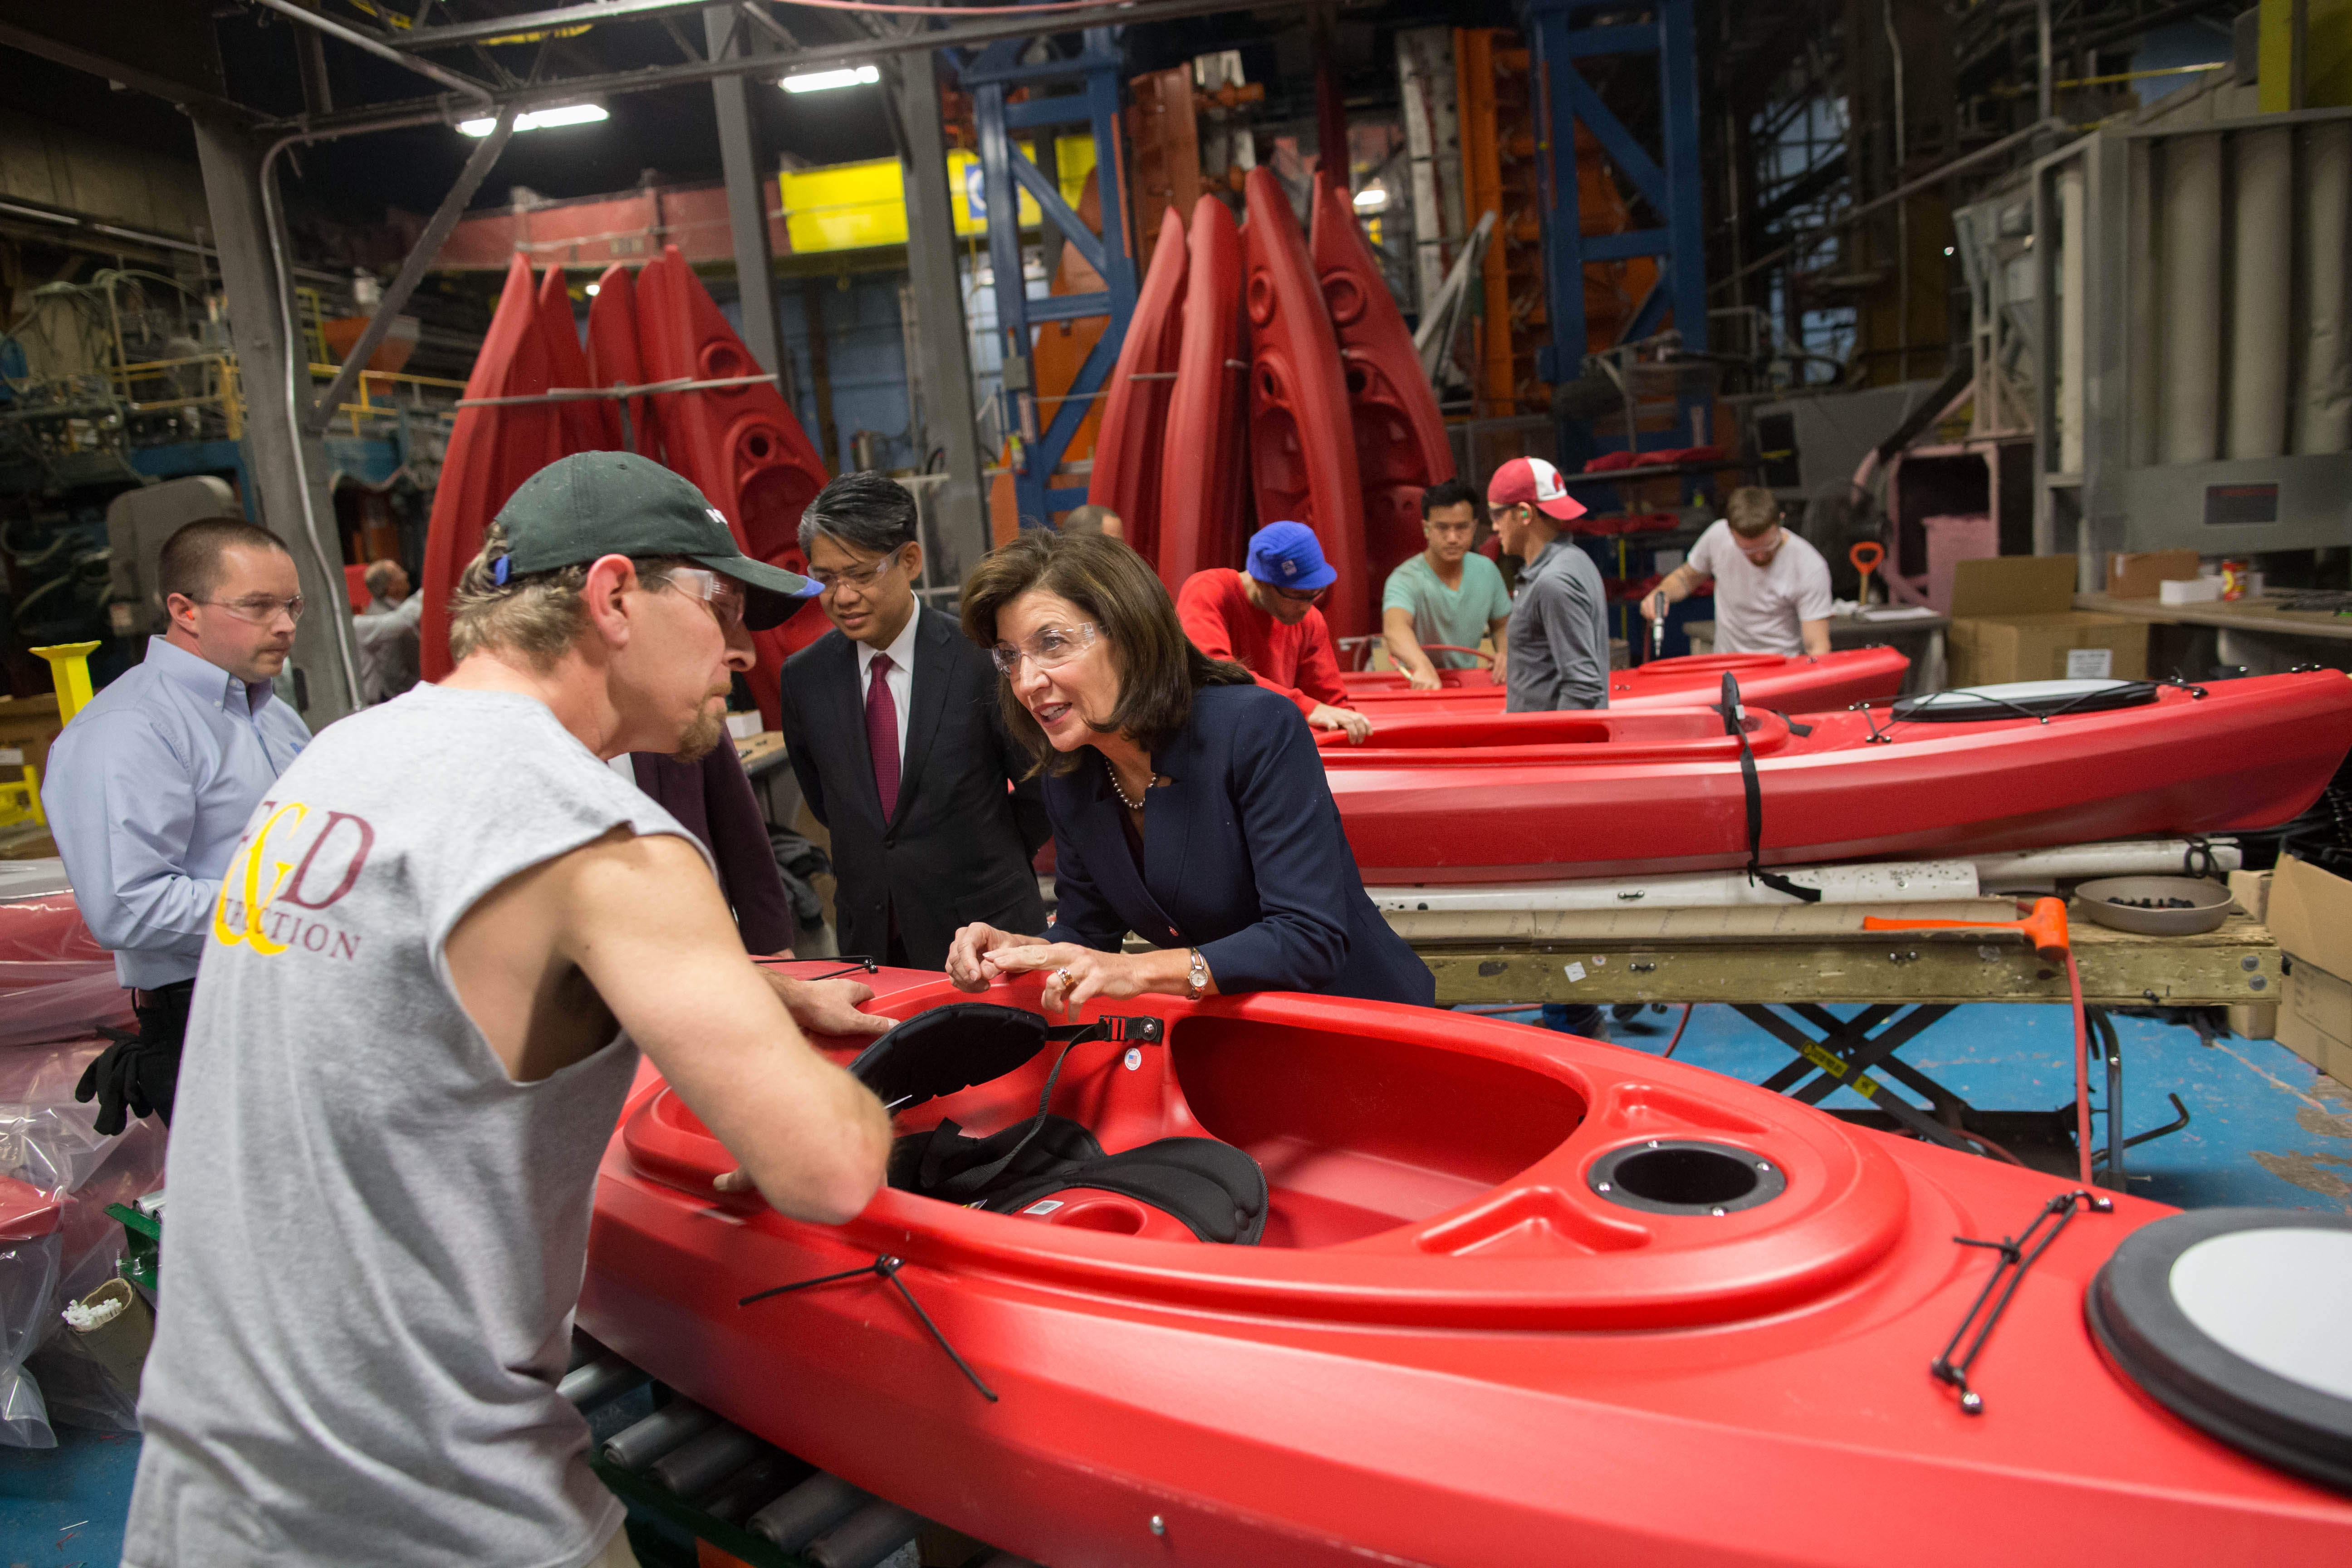 New York Lt. Gov. Kathy Hochul stops to chat with assistant foreman Dwayne Cragle during a tour of the company's facility in North Tonawanda on  Thursday. The company, which makes a wide variety of plastic goods, like these kayaks, using blow molding technology, recently completed a $3 million expansion project thanks in part to a low-cost hydropower allocation from NYPA's Niagara Power Project.  (Derek Gee/Buffalo News)